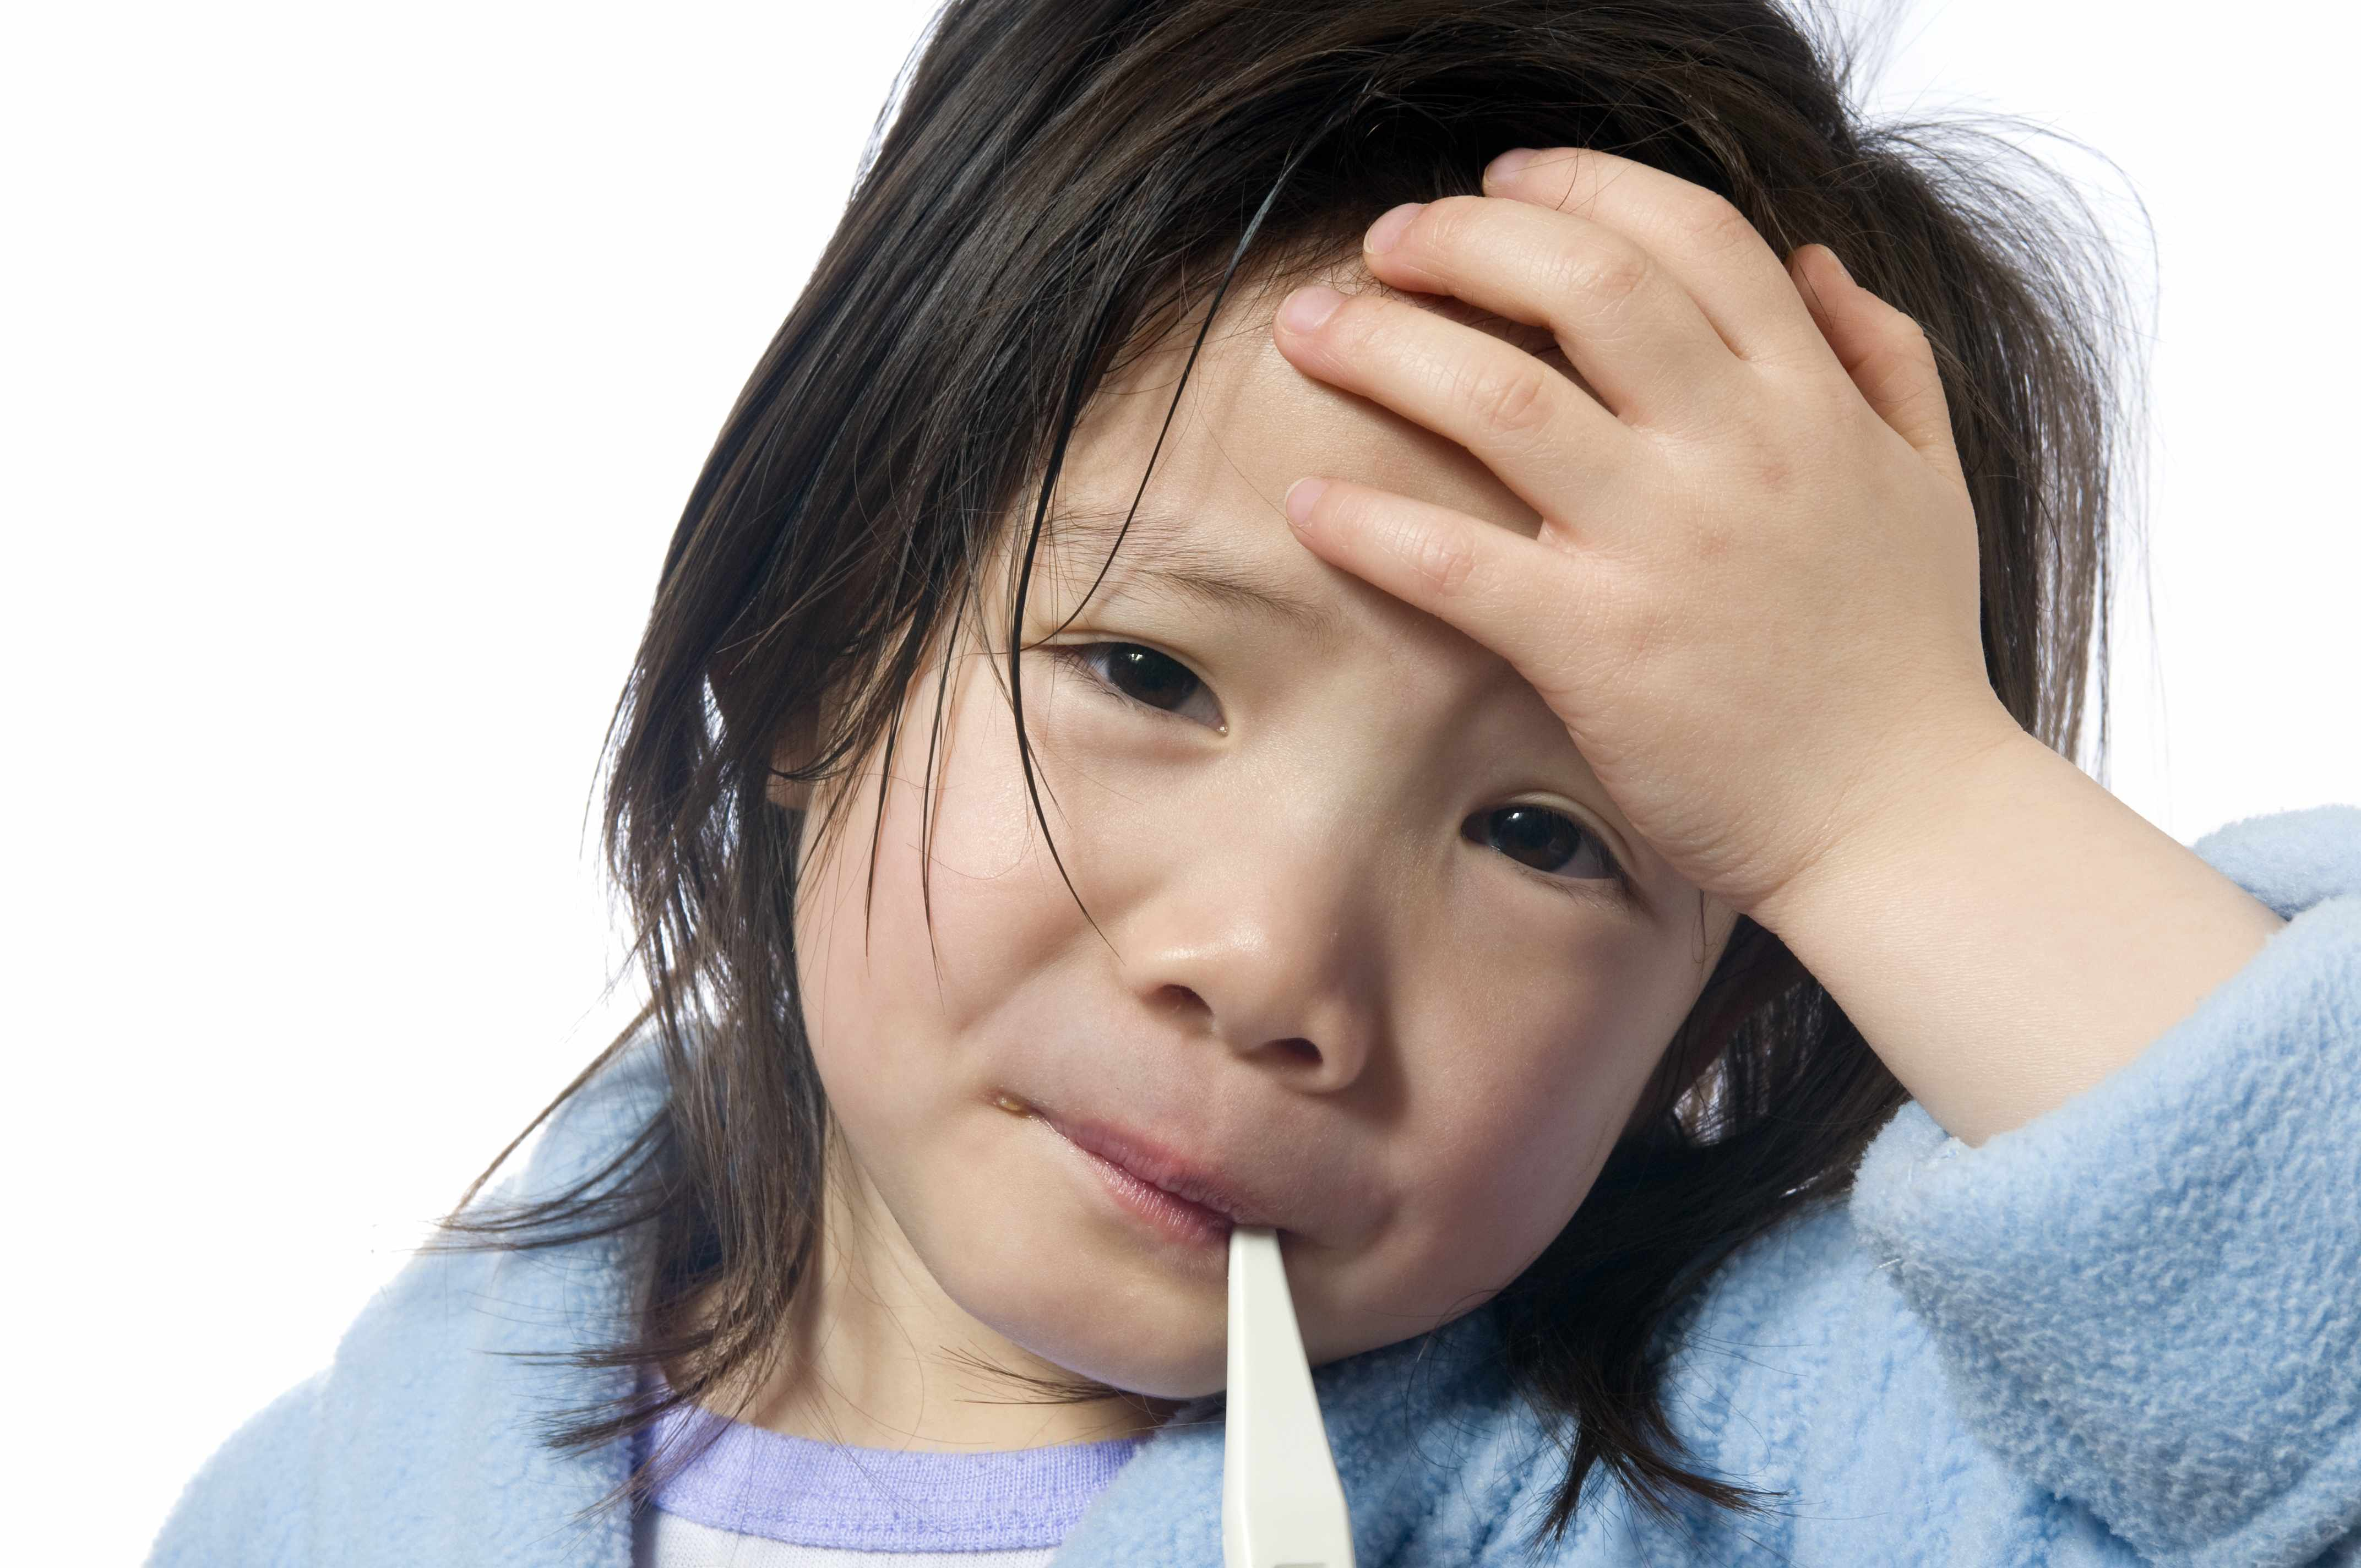 A pediatric fever is a very generic term that often needs further qualification (source)